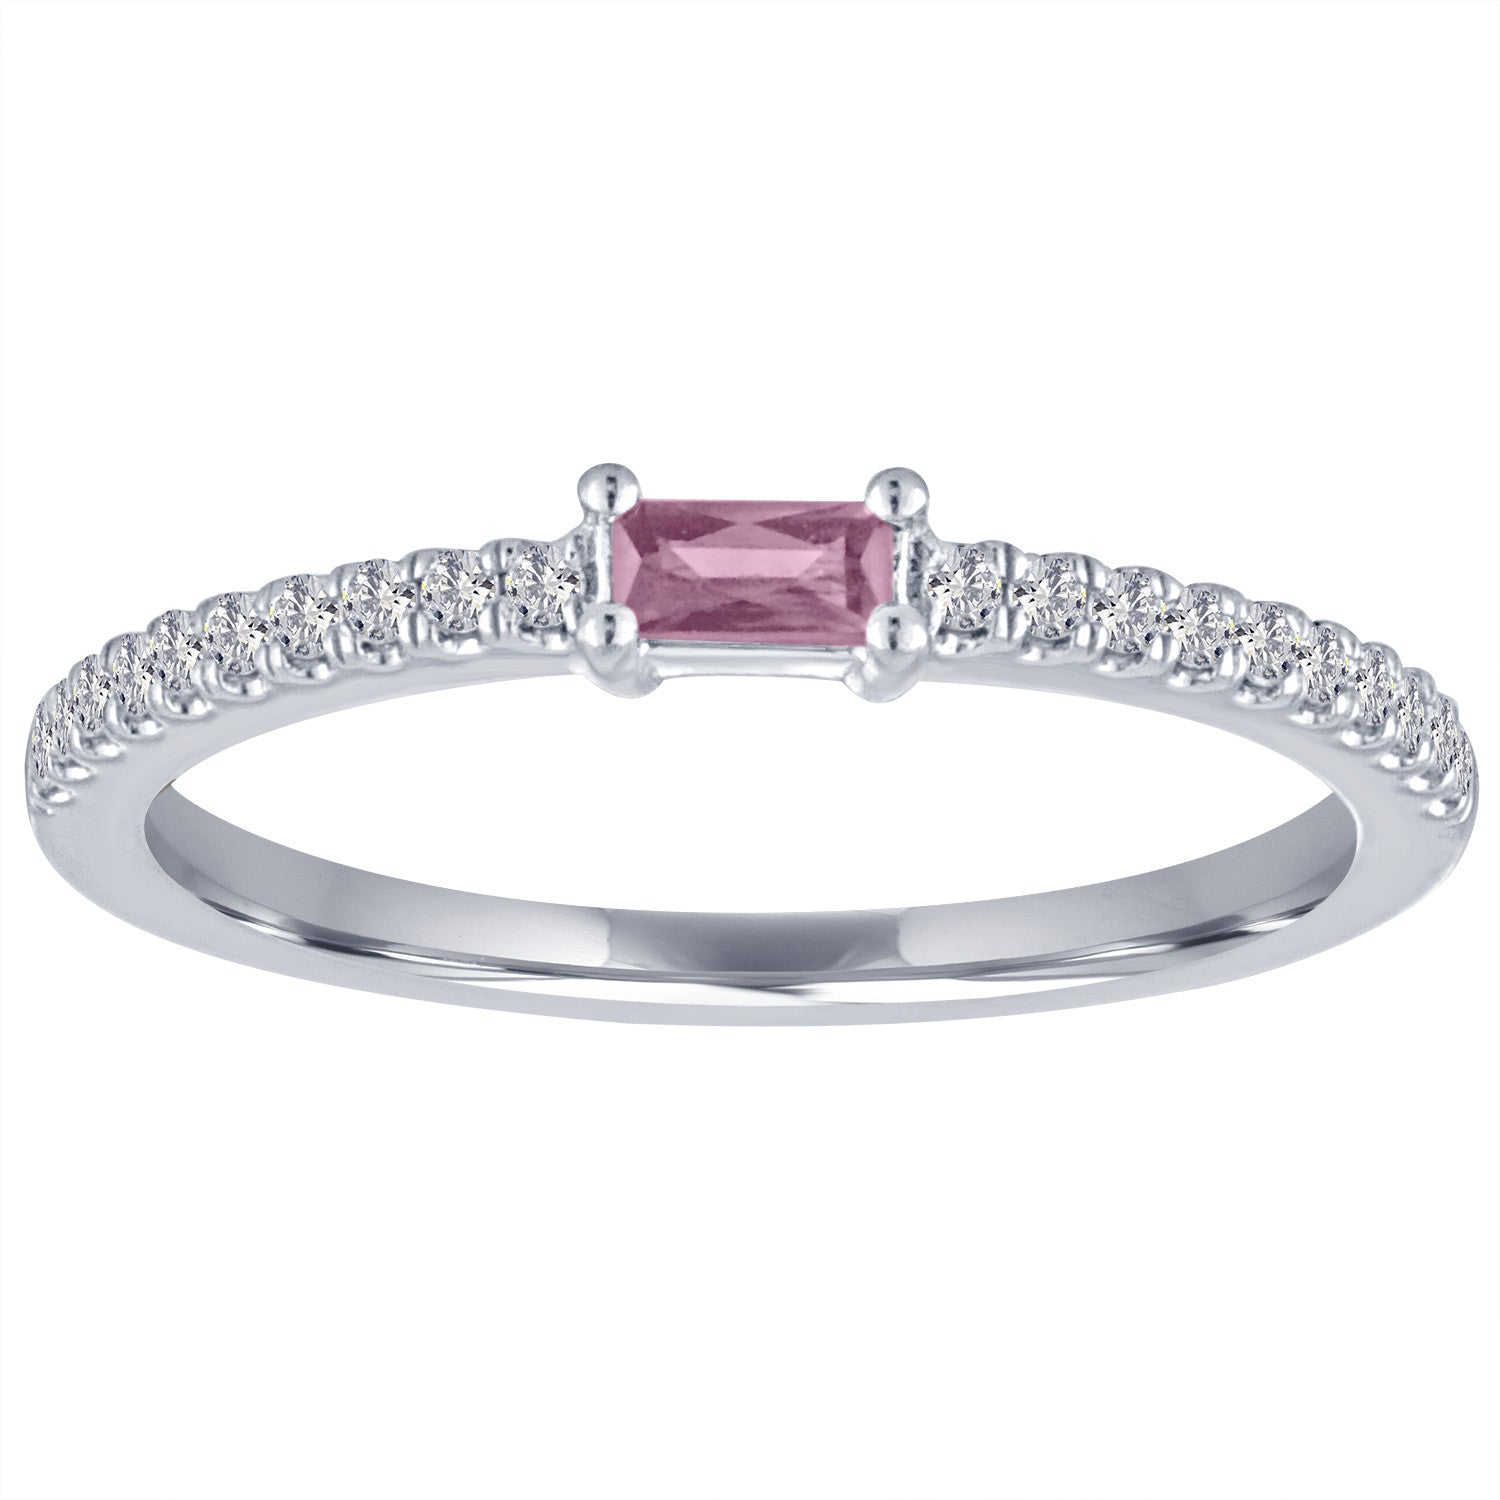 The Julia ring with pink tourmaline center